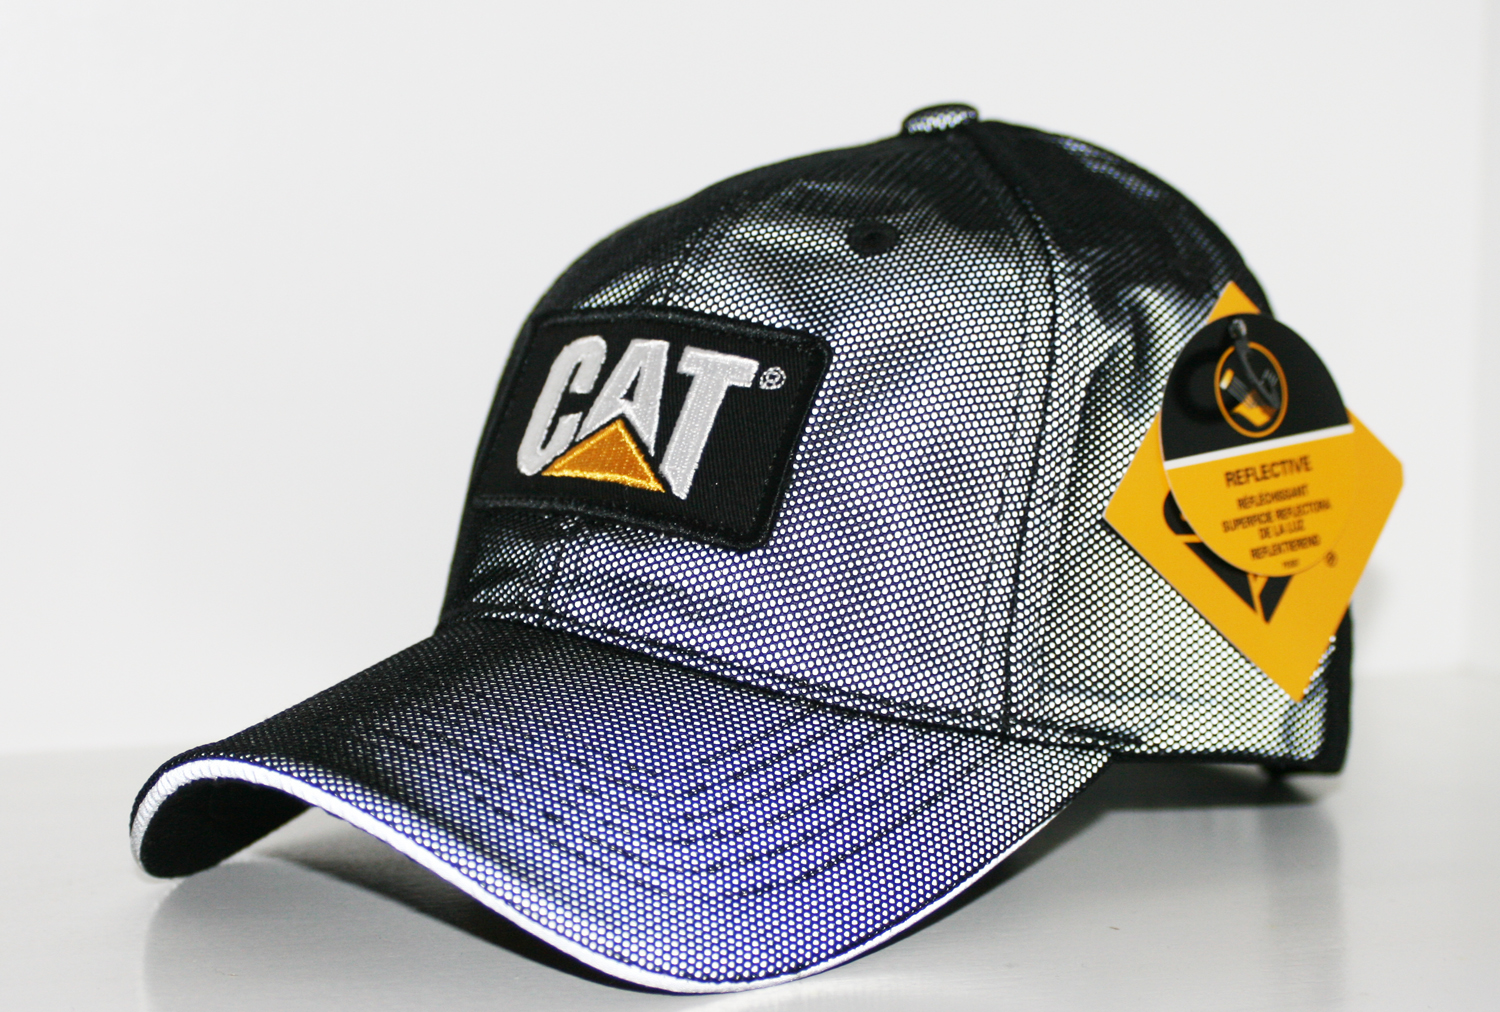 Cat Hats Cat Caps Cat Reflective Workwear Mesh Caps